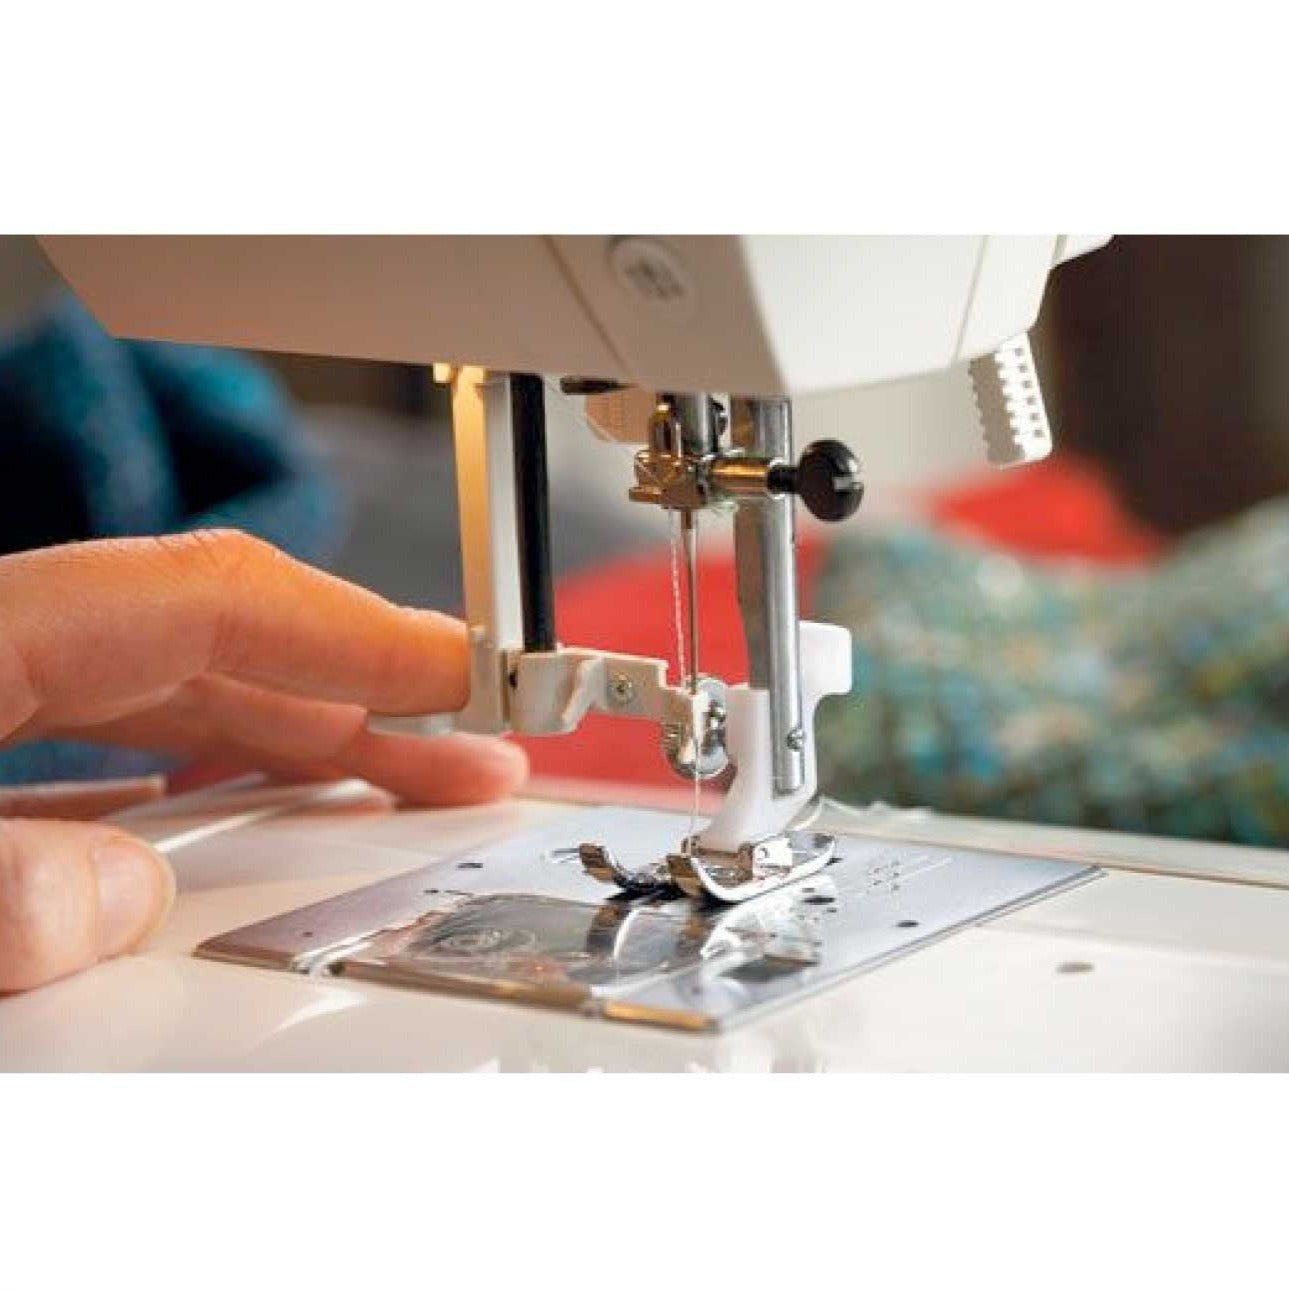 Husqvarna Viking Emerald 116 ⋆ \u2014 jaycotts.co.uk - Sewing Supplies